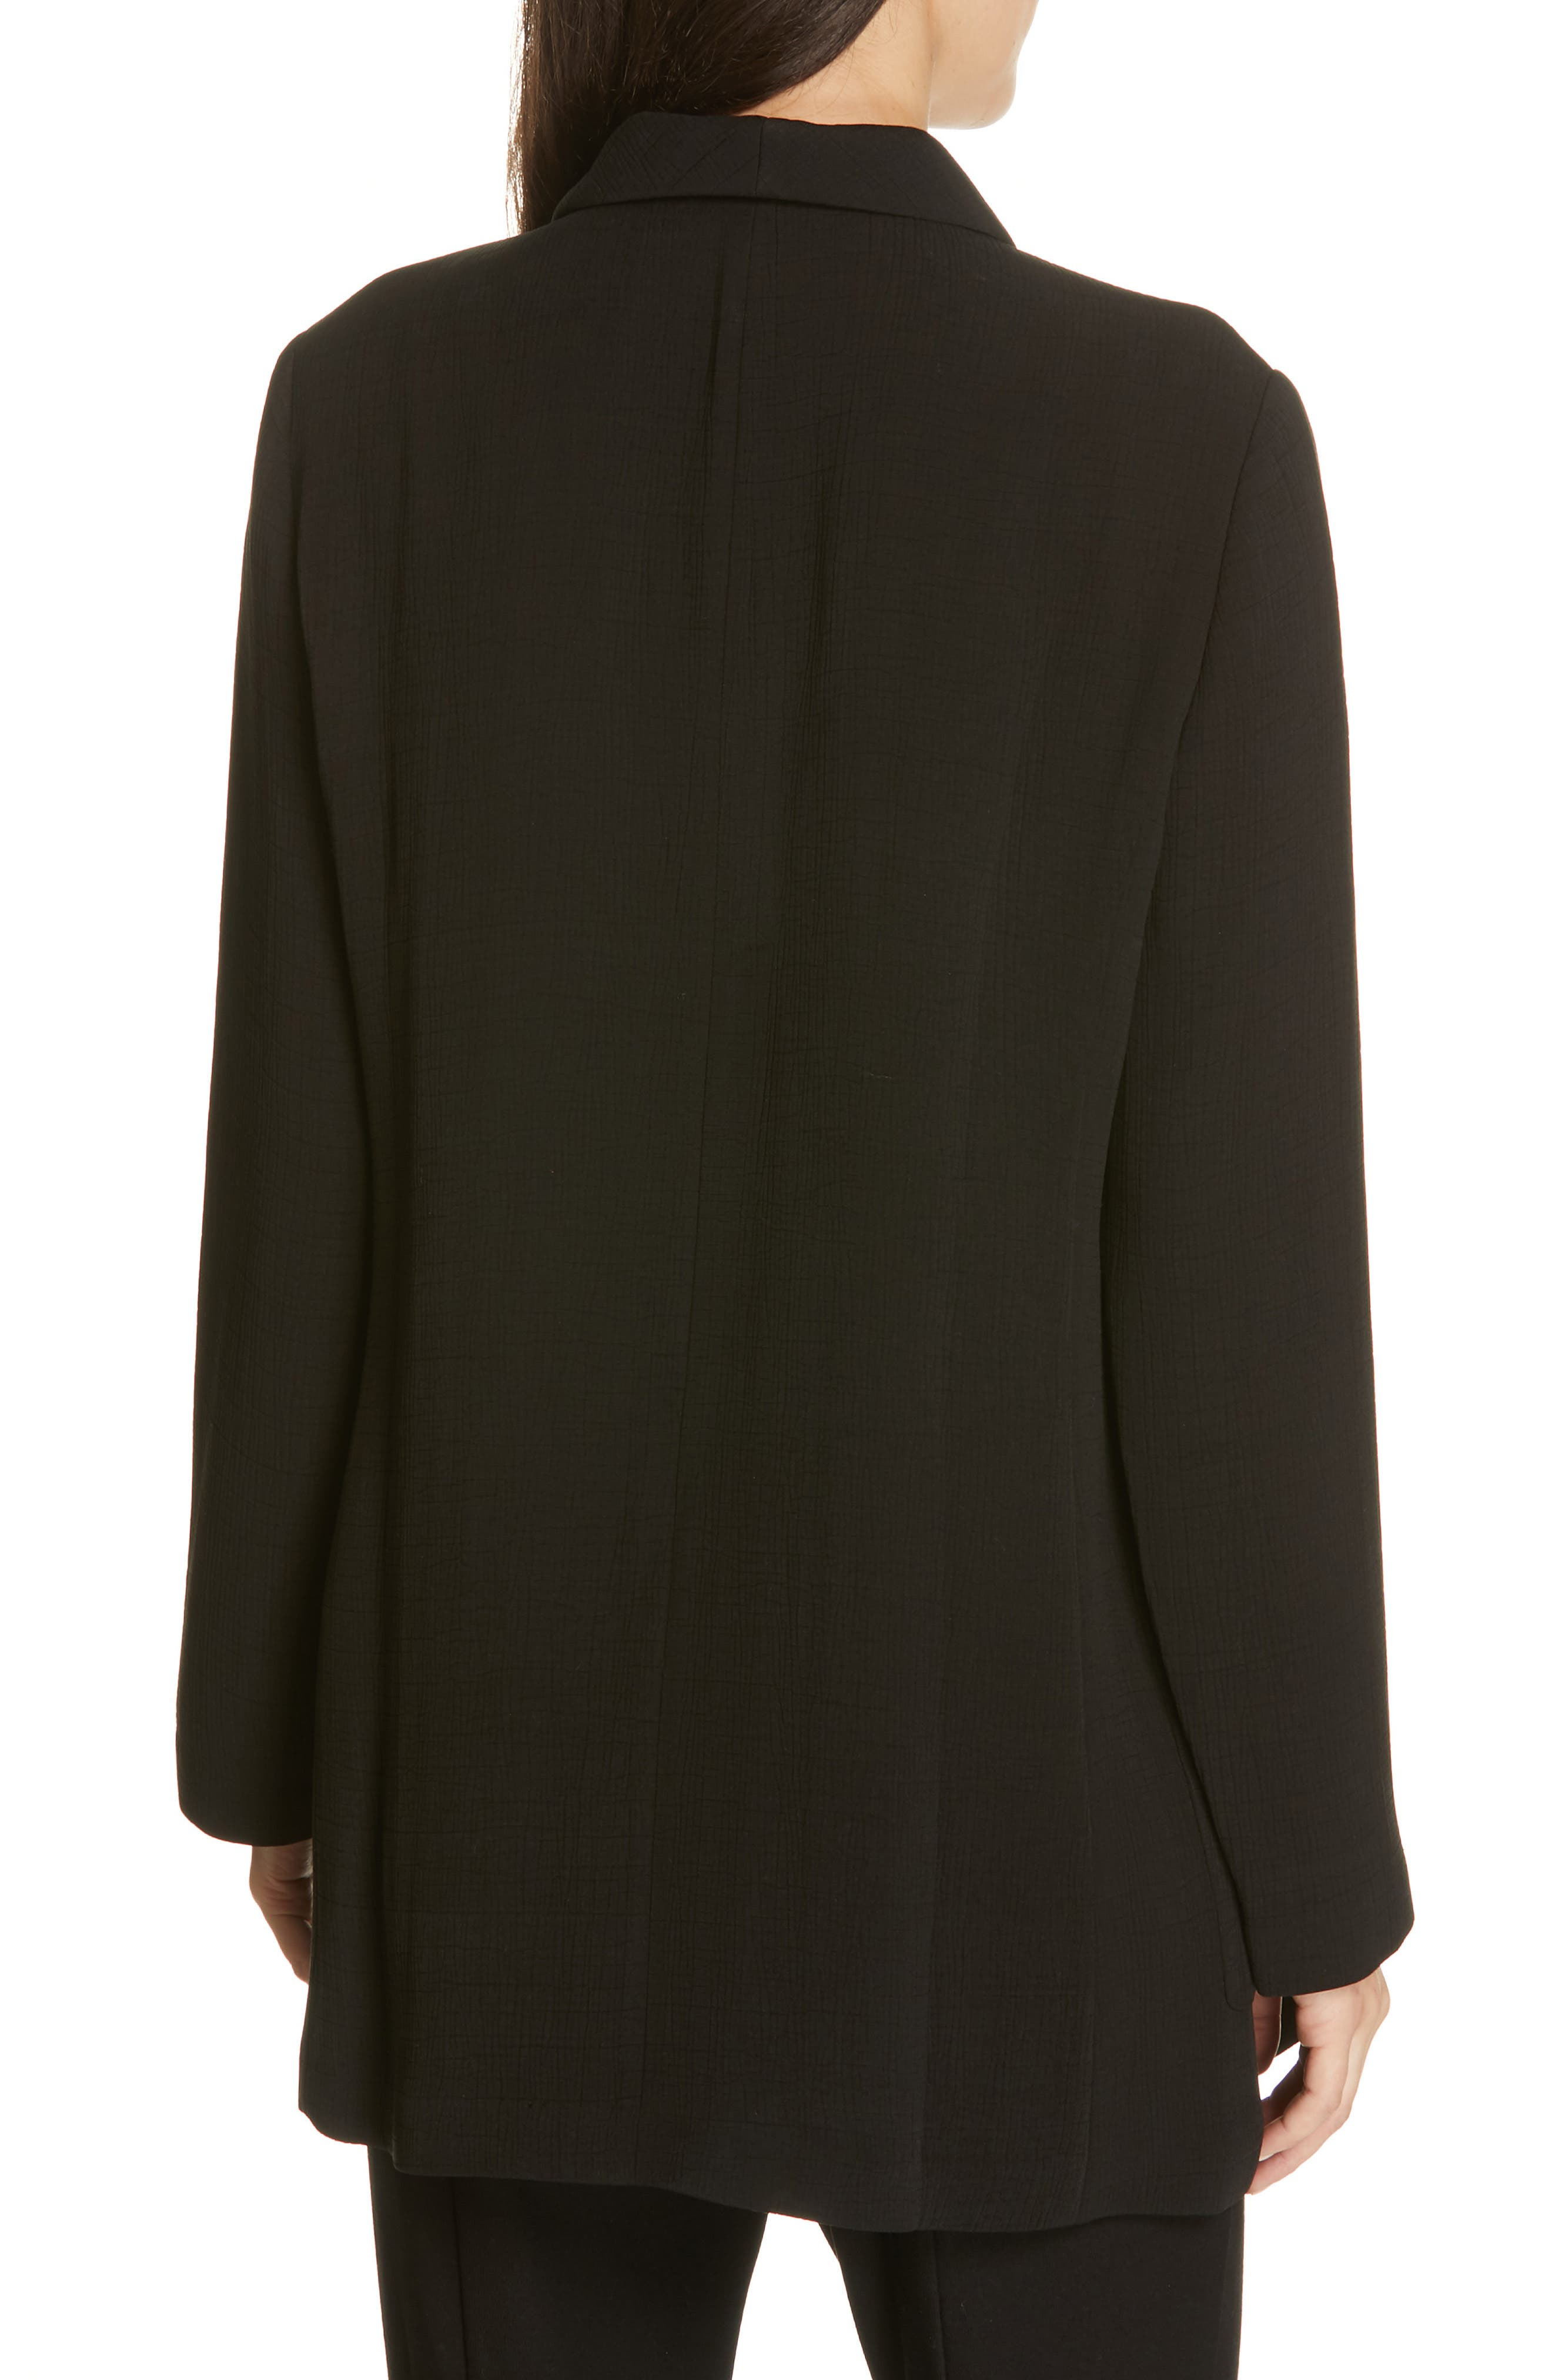 EILEEN FISHER, Double Breasted Blazer, Alternate thumbnail 2, color, BLACK